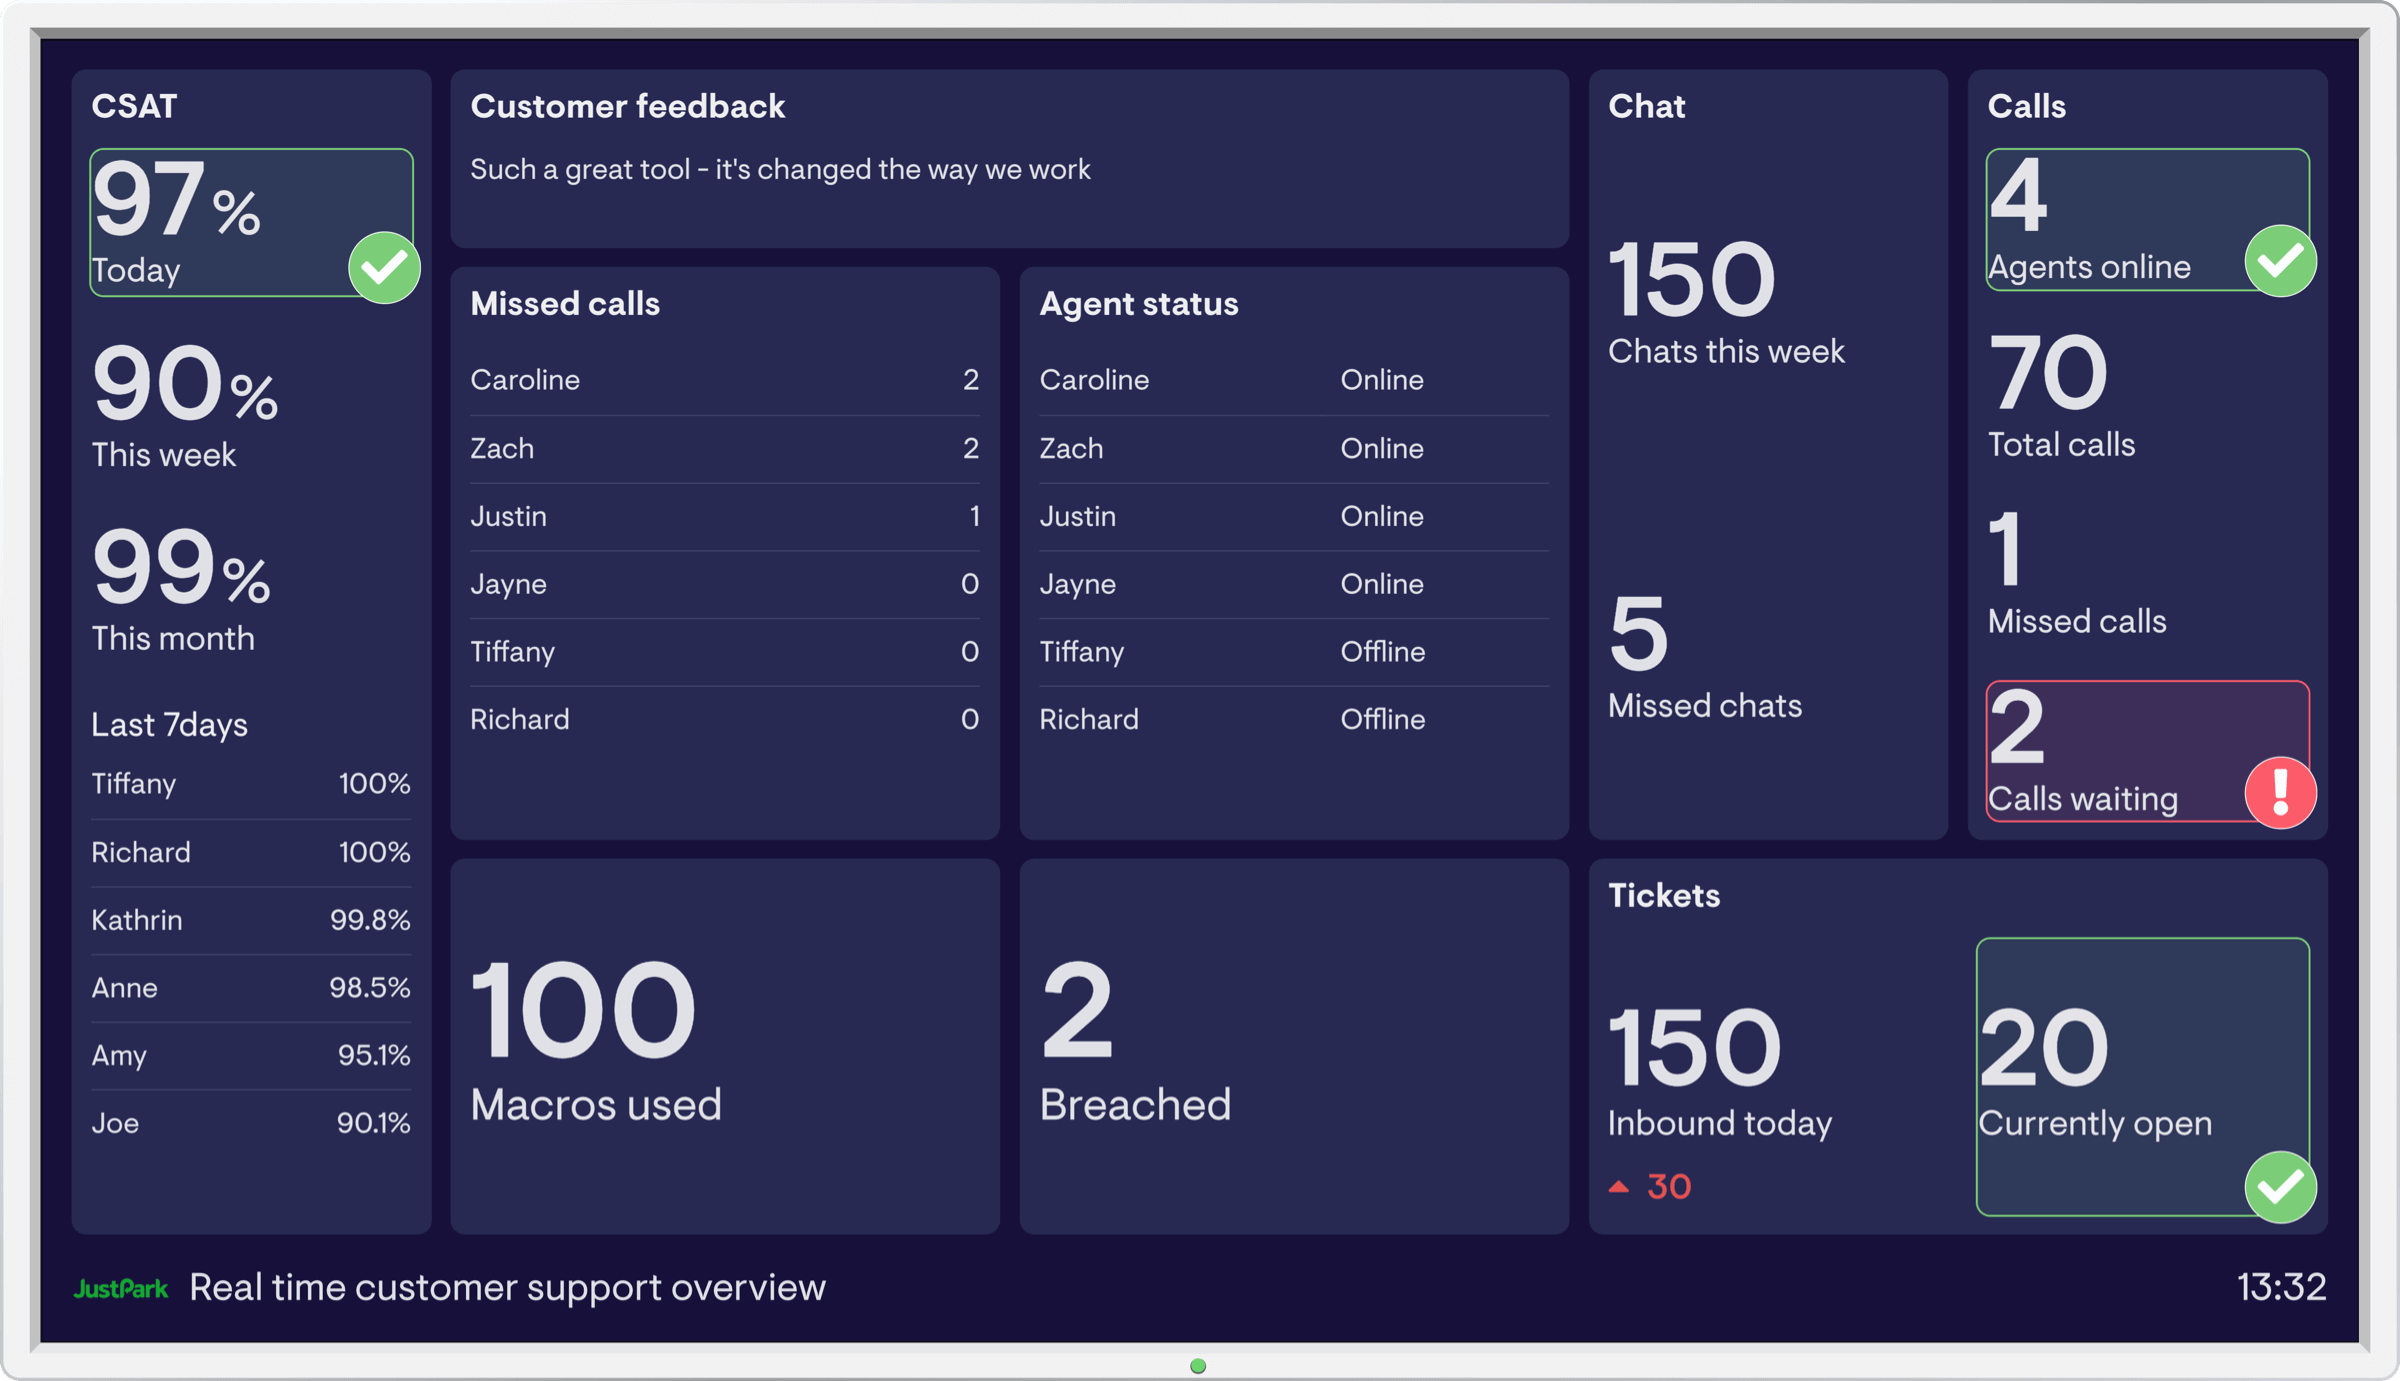 Customer support dashboard example image